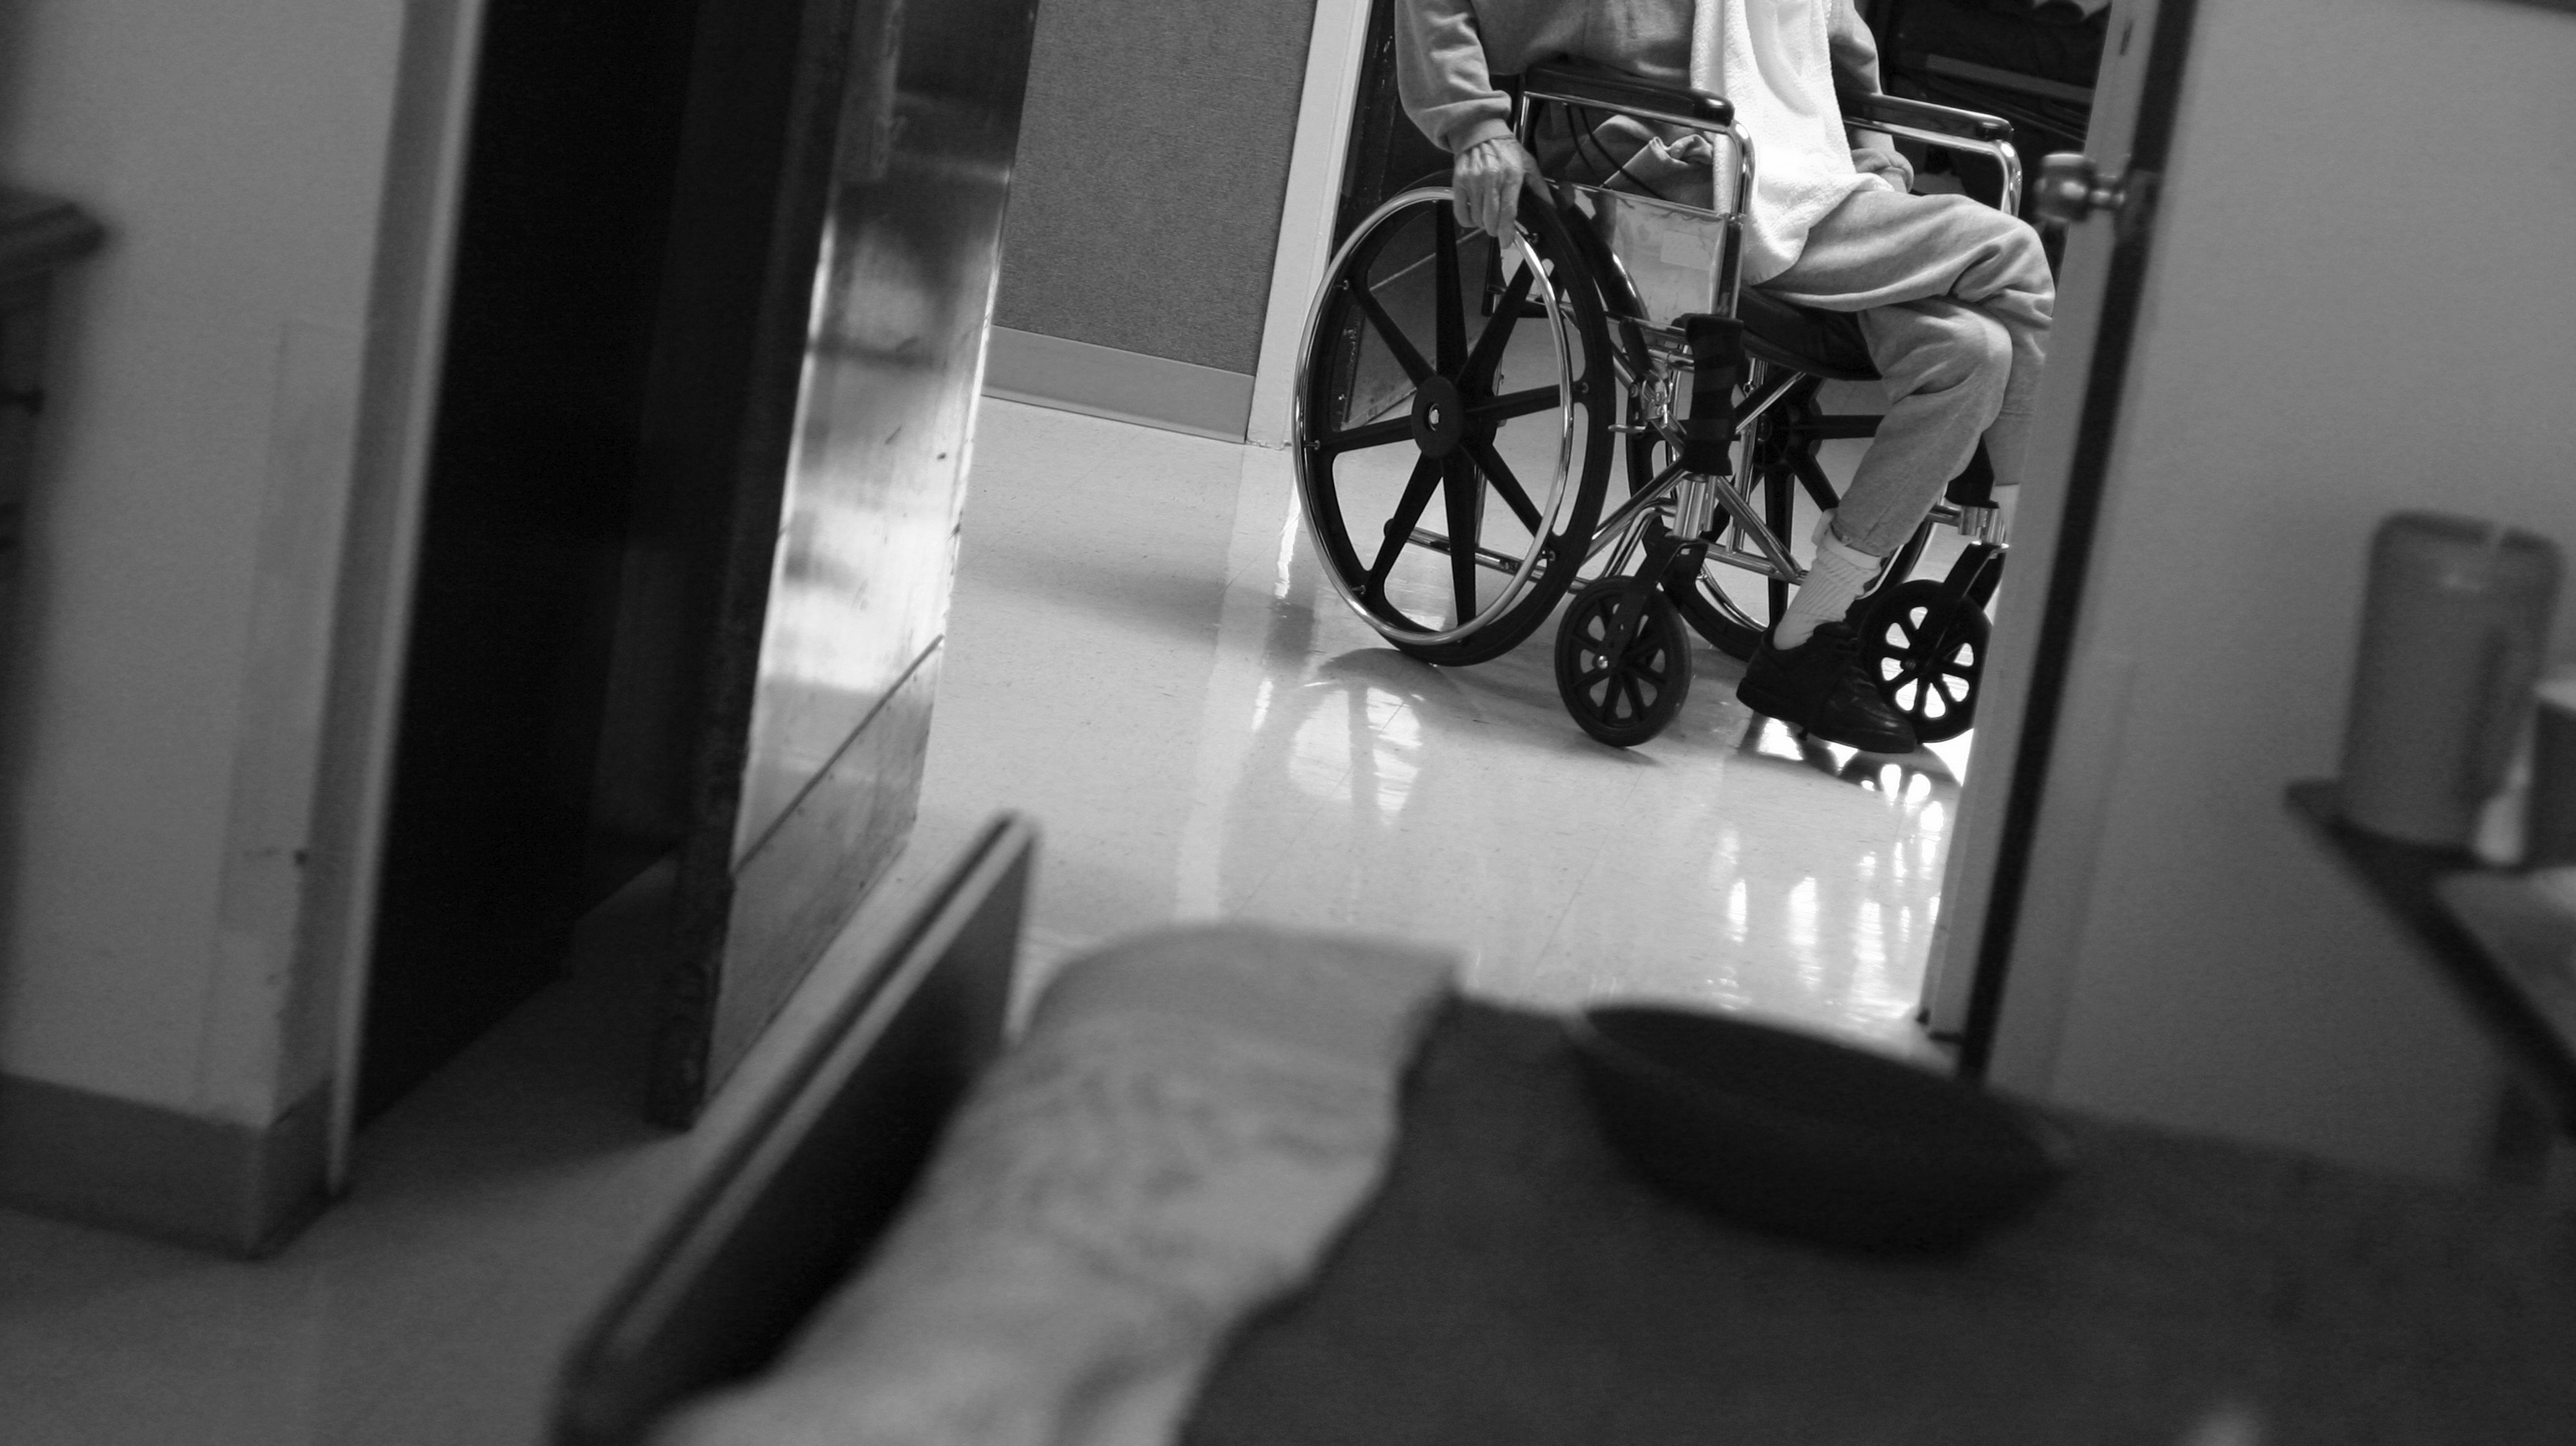 A Third Of Nursing Home Patients Harmed By Their Treatment